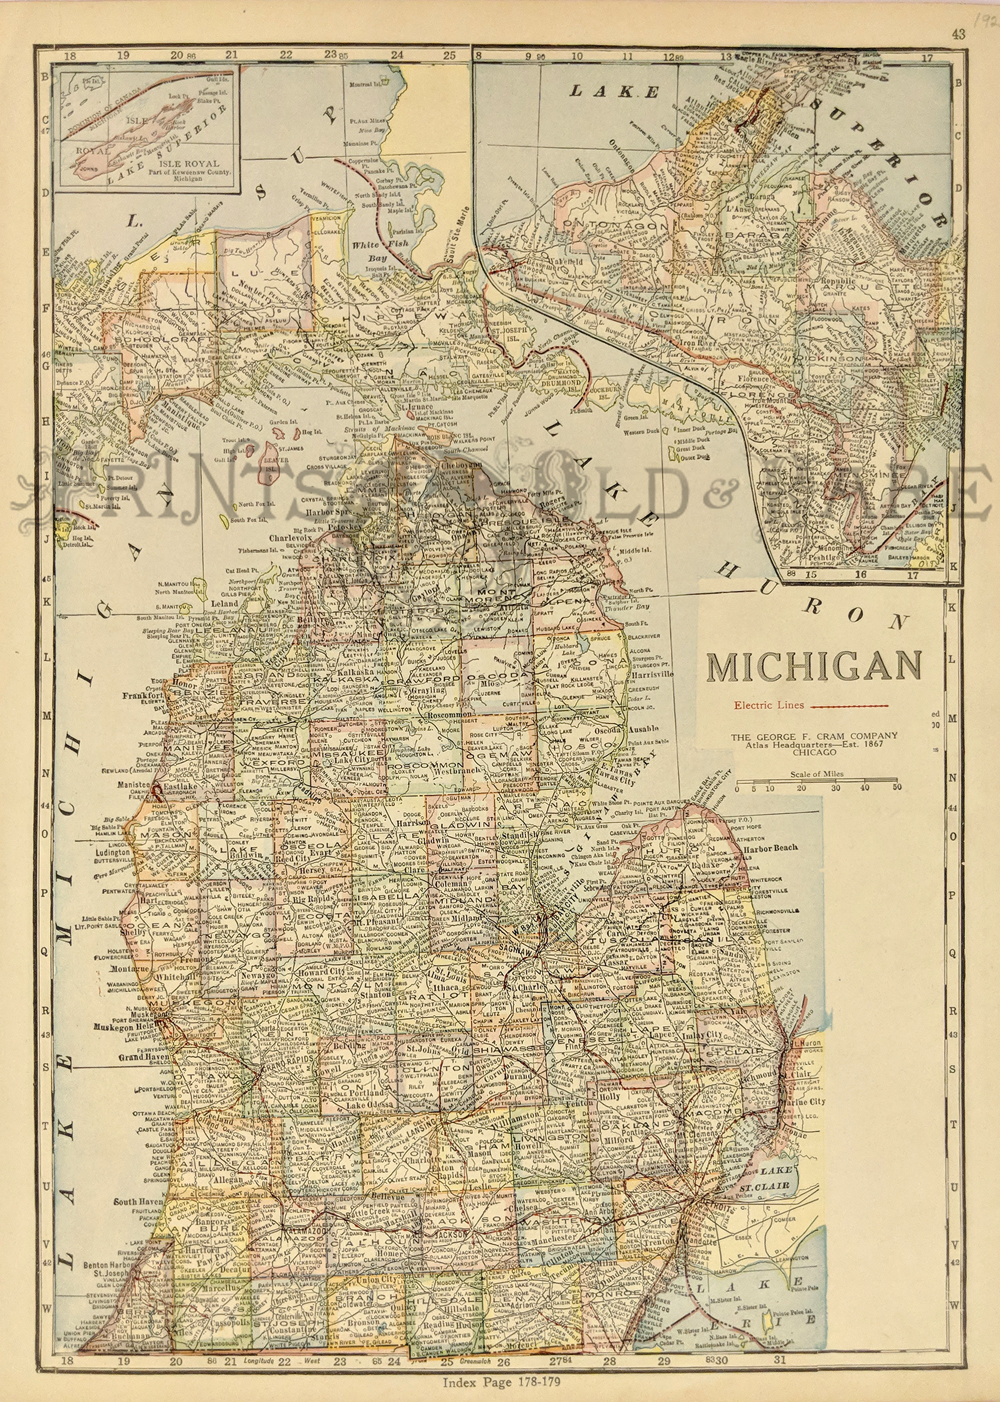 Prints old rare michigan antique maps prints 1924 color michigan map by george f cram which also shows all the electric lines with an inset upper left of lake superiors isle royal and top right gumiabroncs Gallery